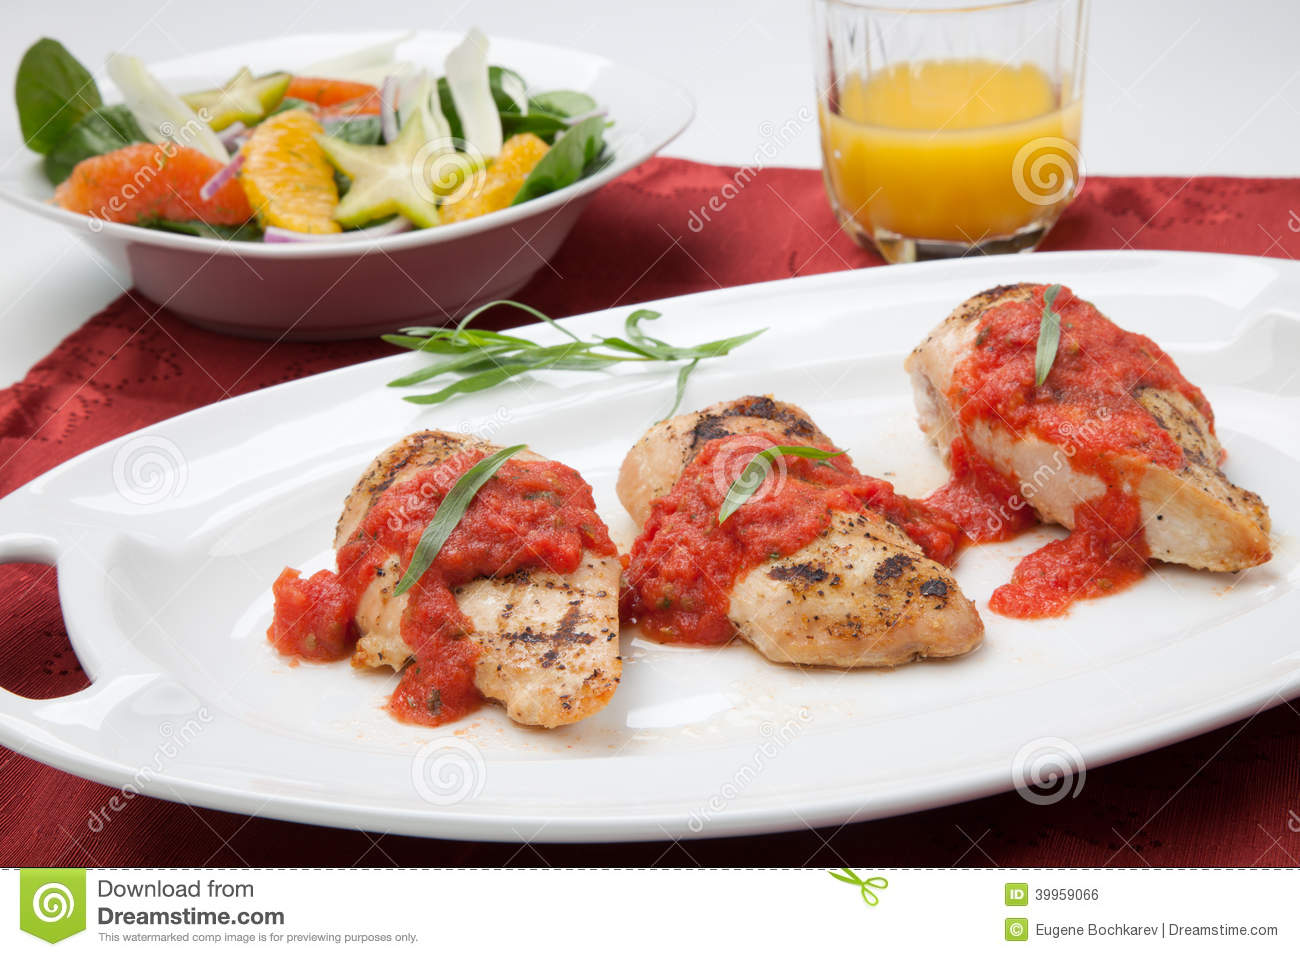 ... grilled chicken with white barbecue sauce grilled chicken with tomato